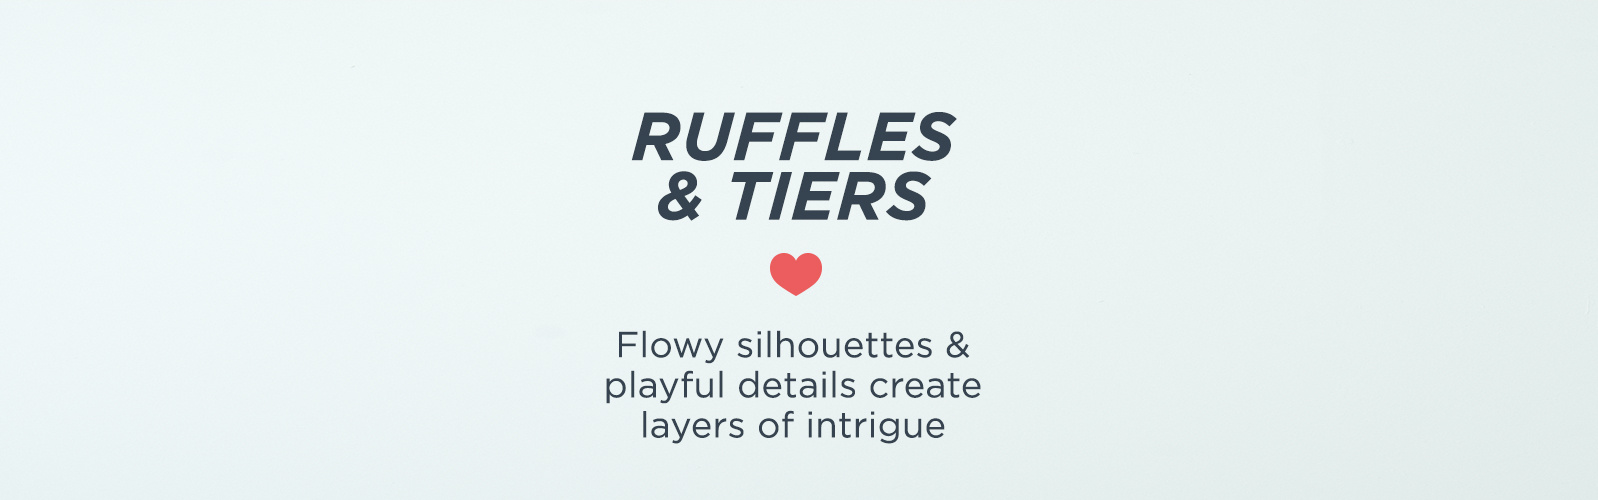 Ruffles & Tiers — Breezy silhouettes & layers lend a relaxed vibe to your look